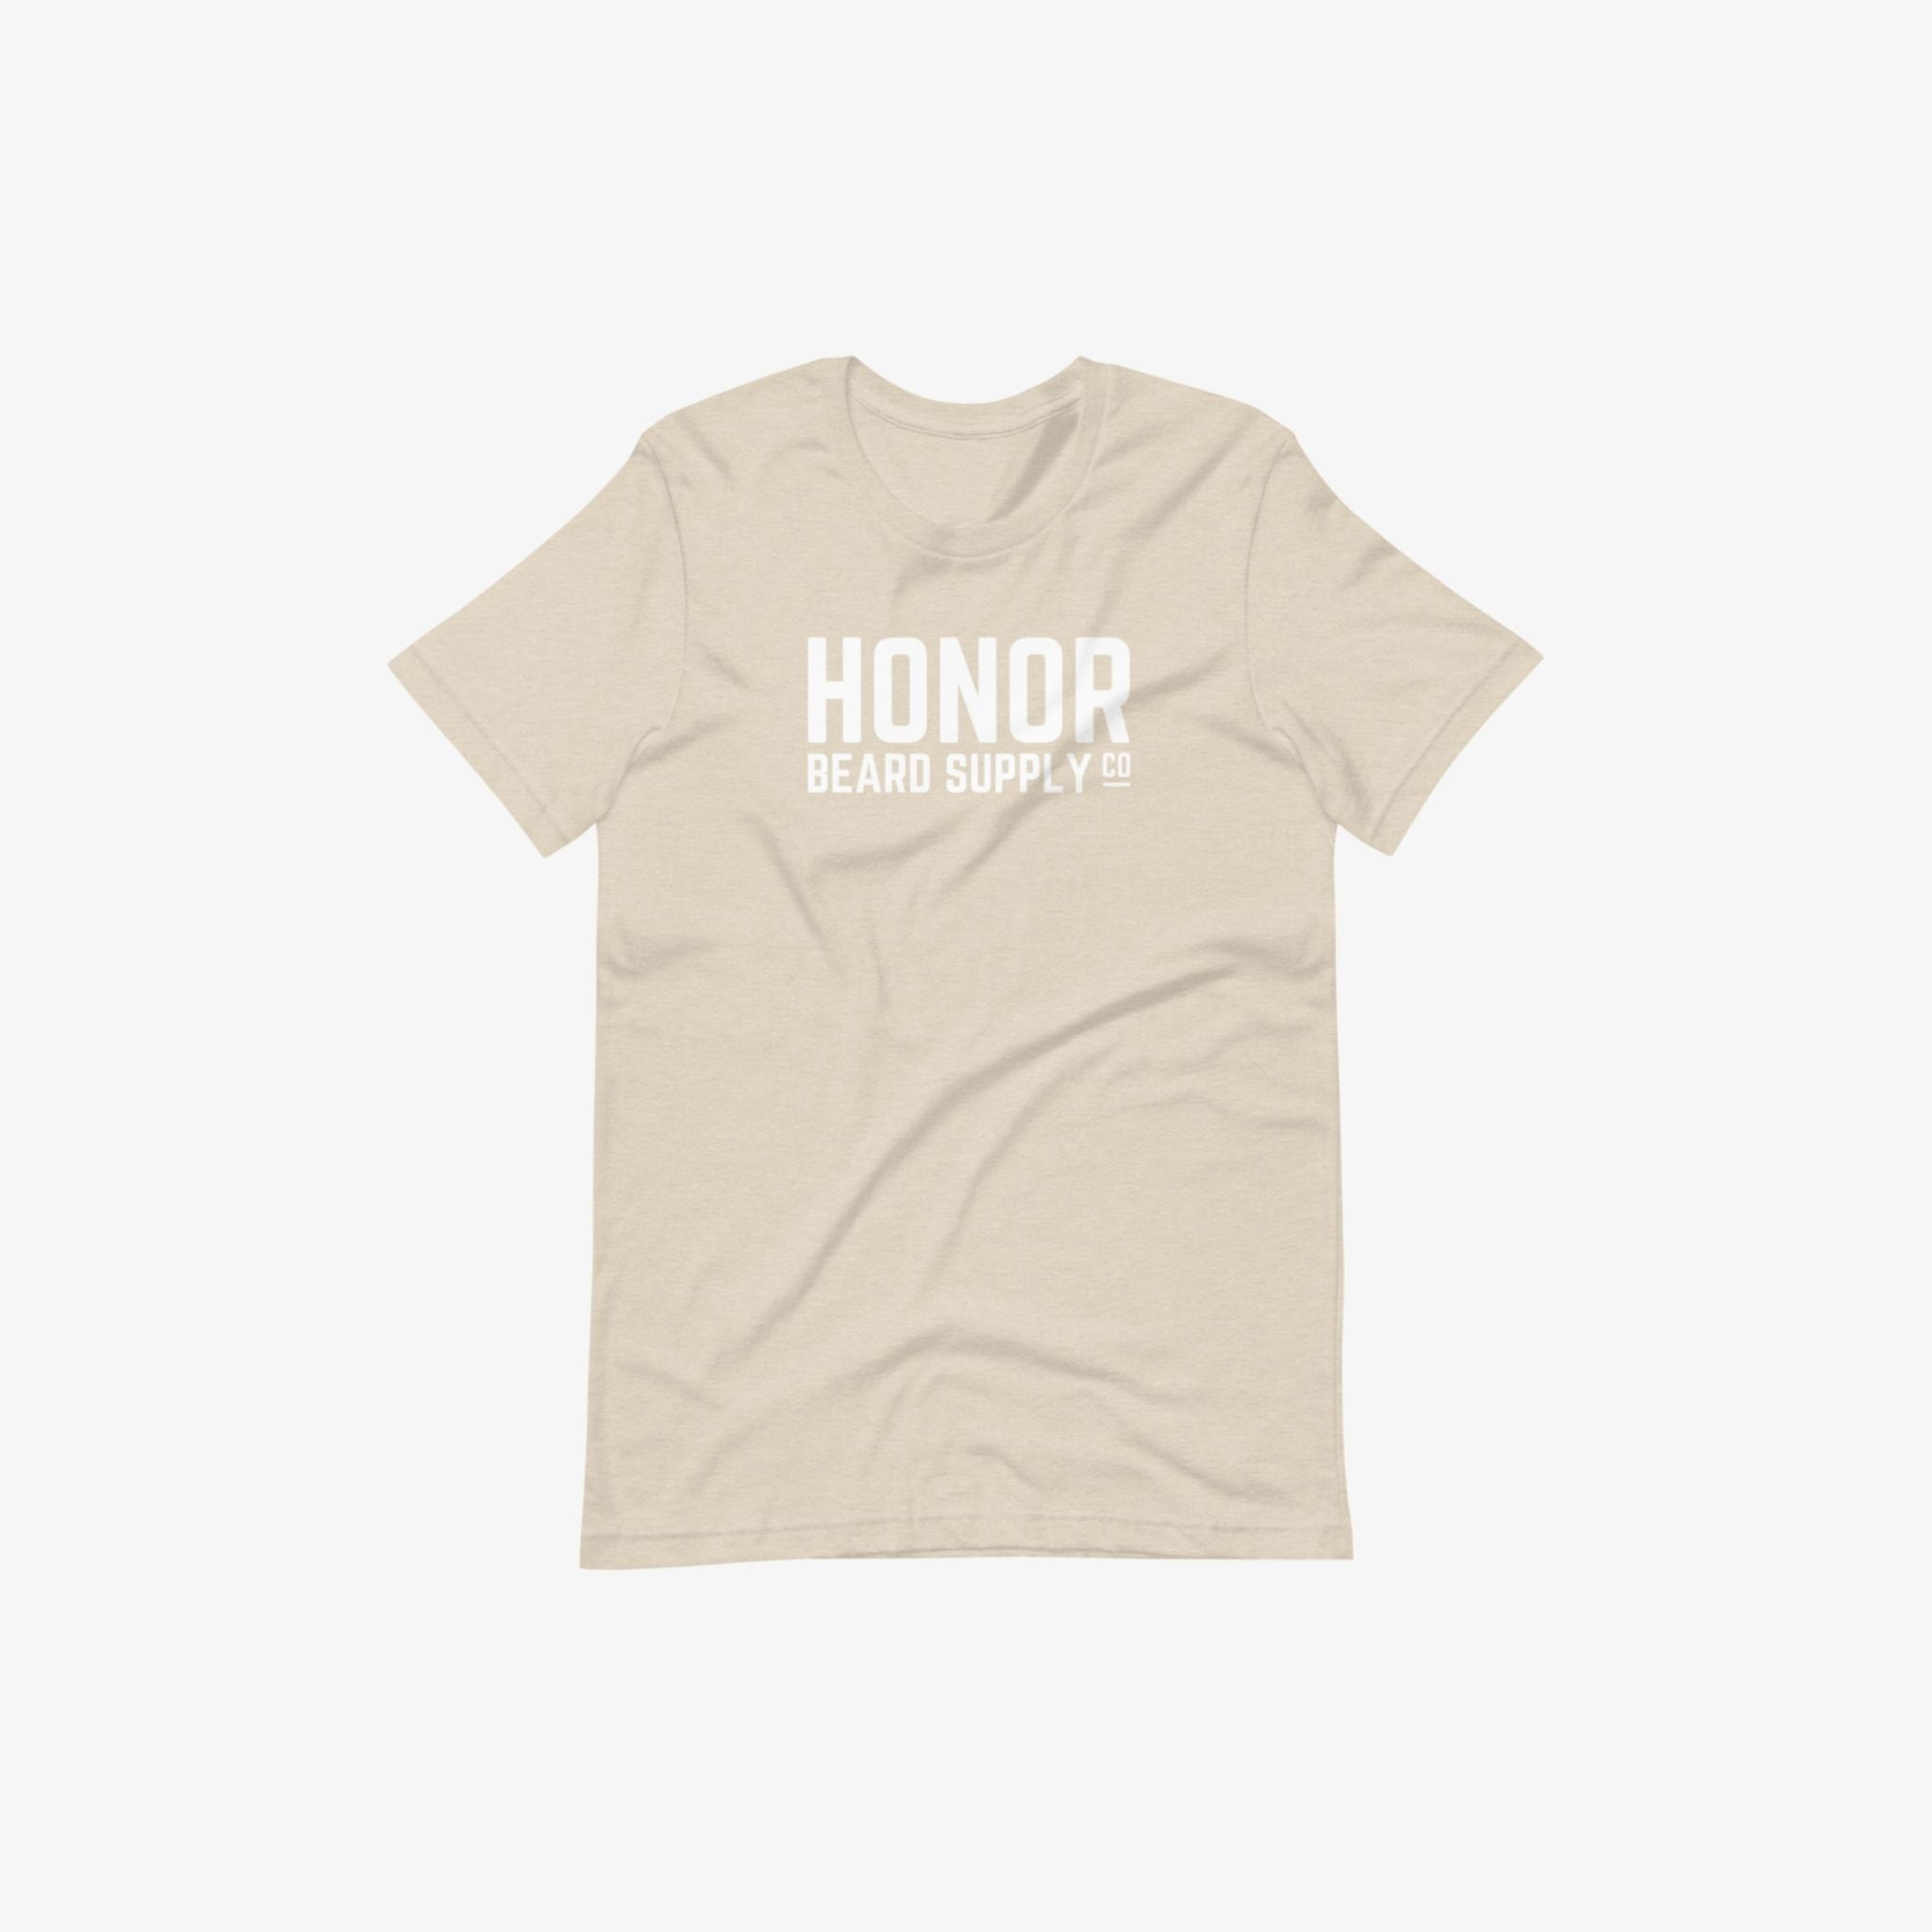 Honor's supply company tee in heather dust and on a white background